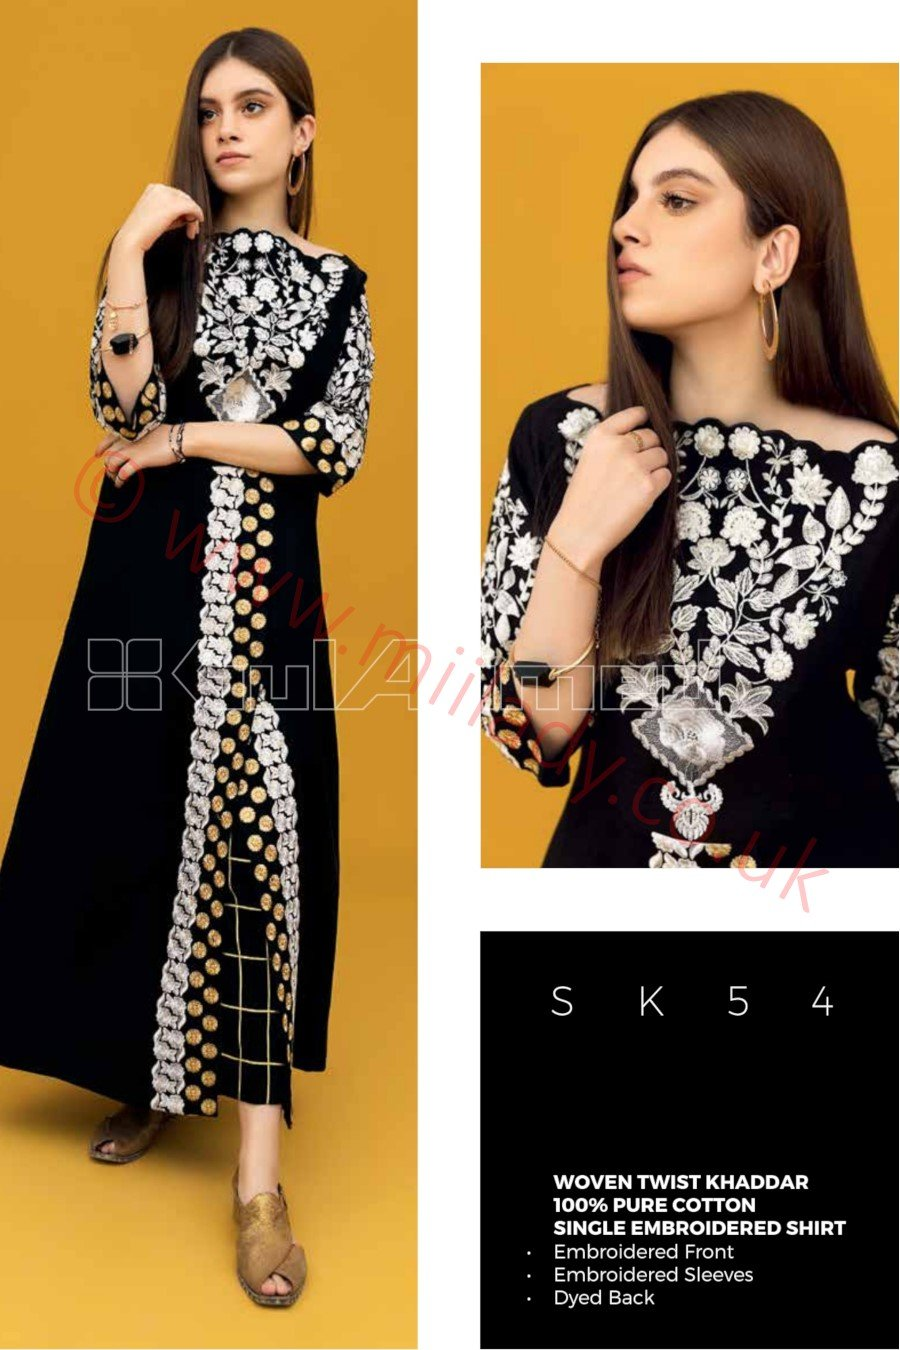 Gul Ahmed Winter 2018 Kurti SK54 - Embroidered Khaddar Single Black Shirt